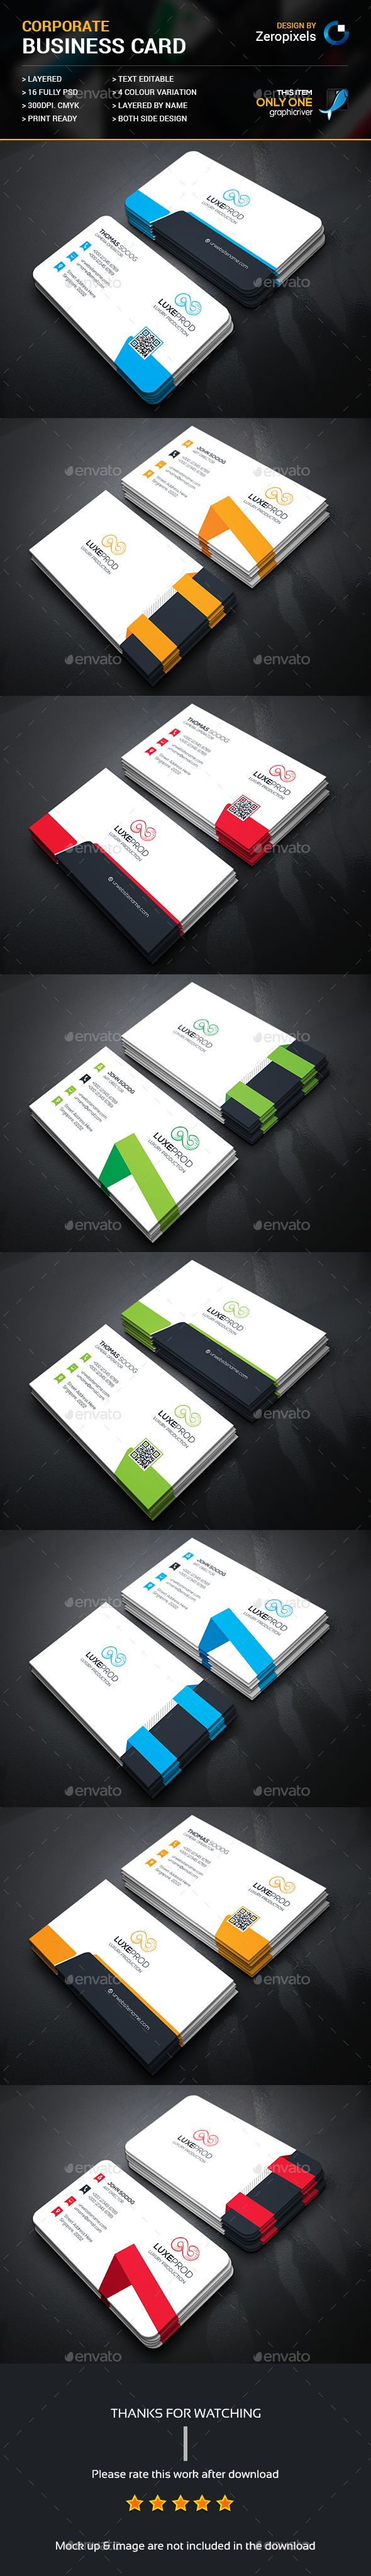 Business Card Bundle Templates PSD. Download here: http://graphicriver.net/item/business-card-bundle/16720984?ref=ksioks